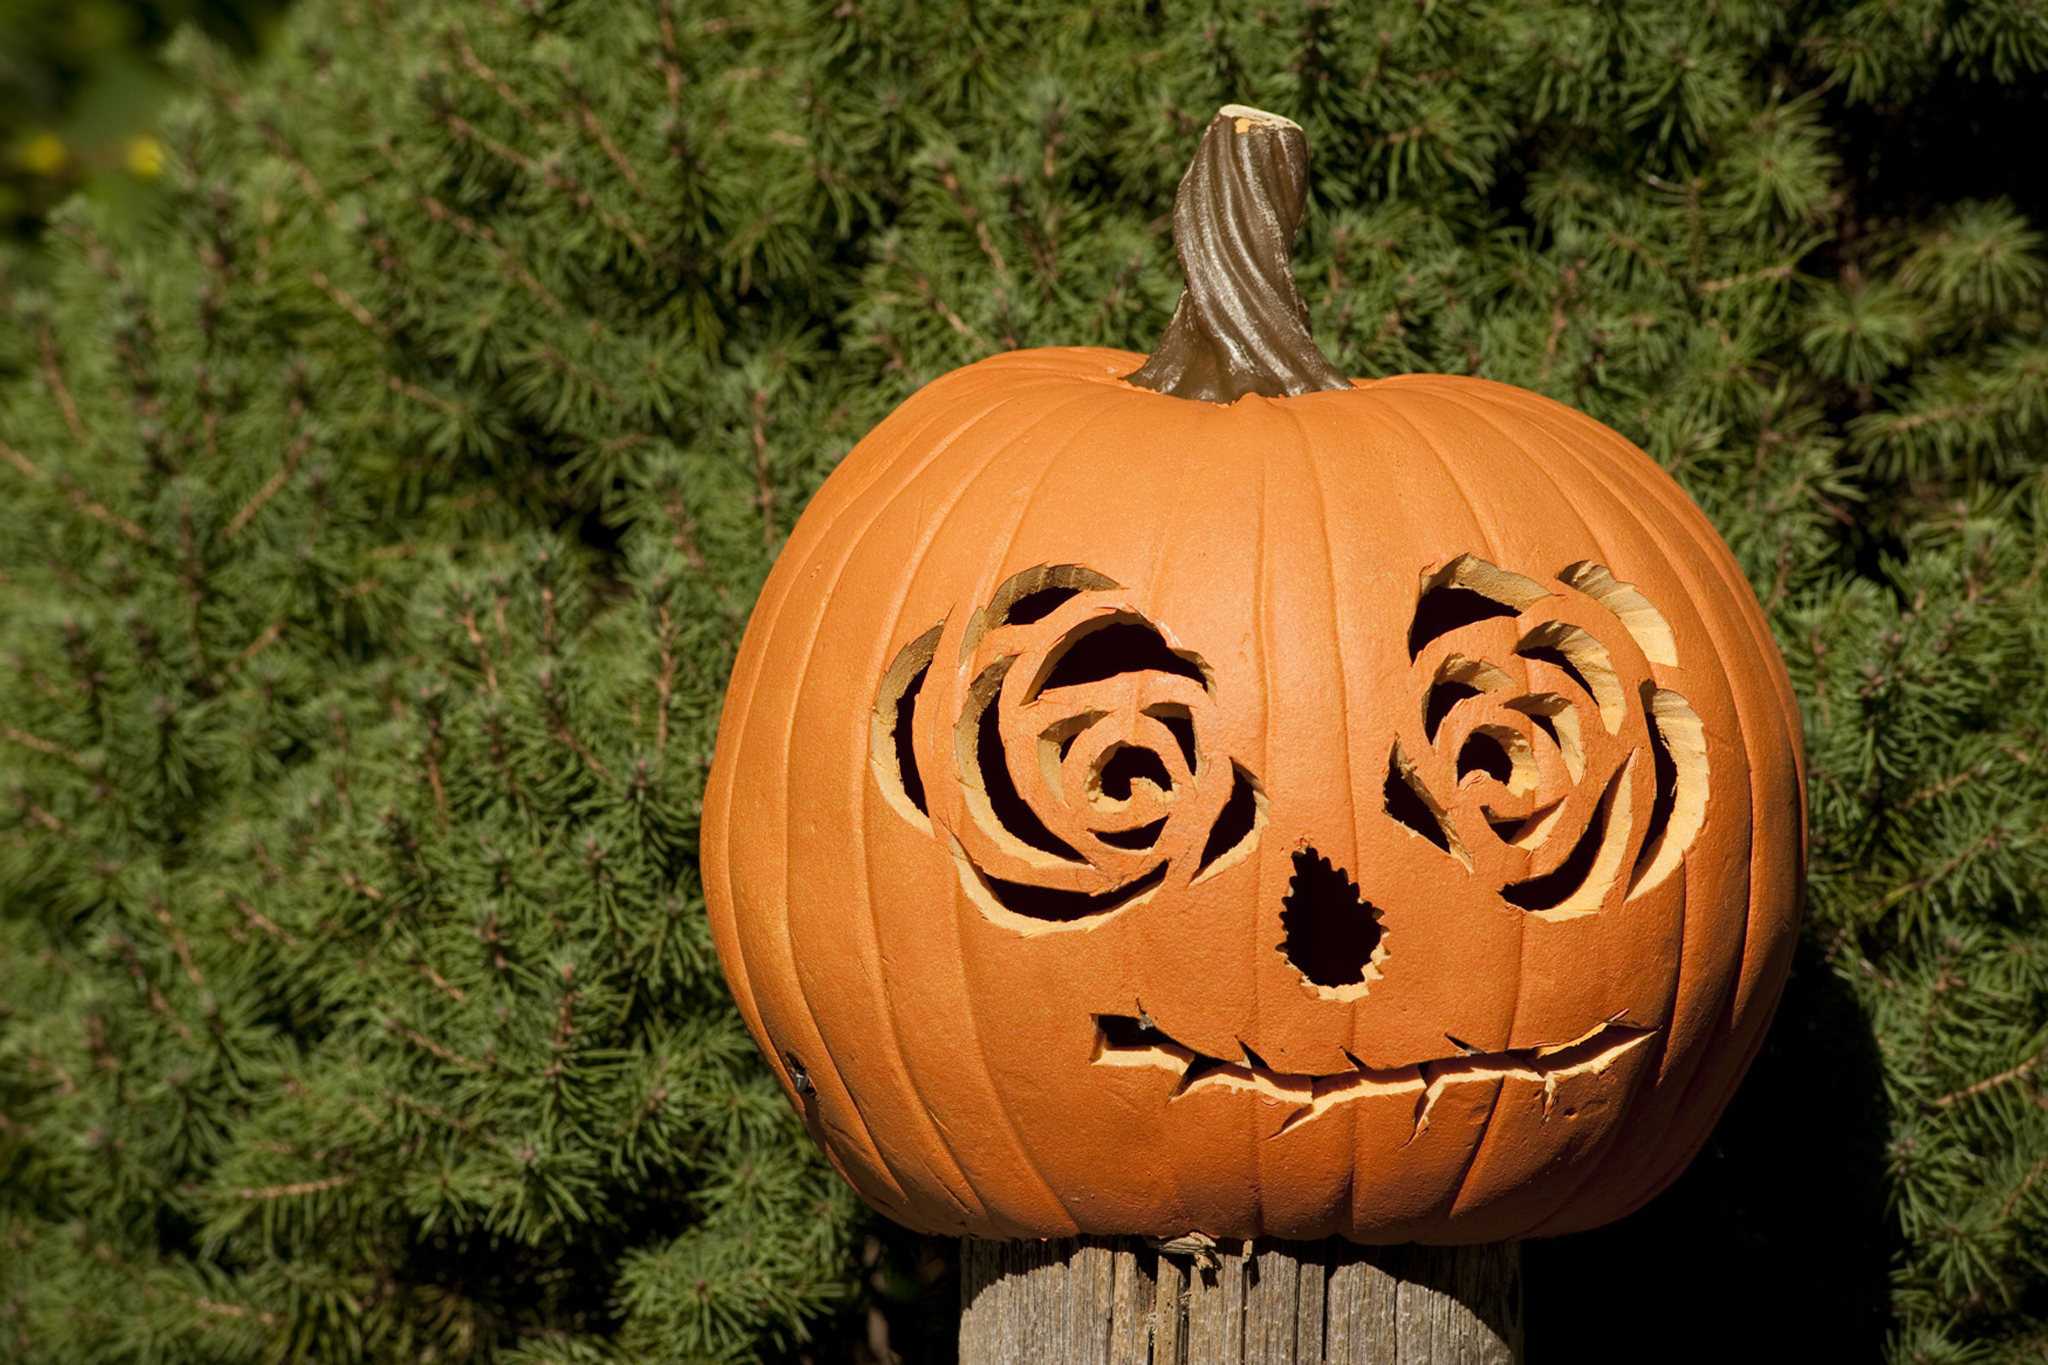 Best Halloween events for kids and families in NYC